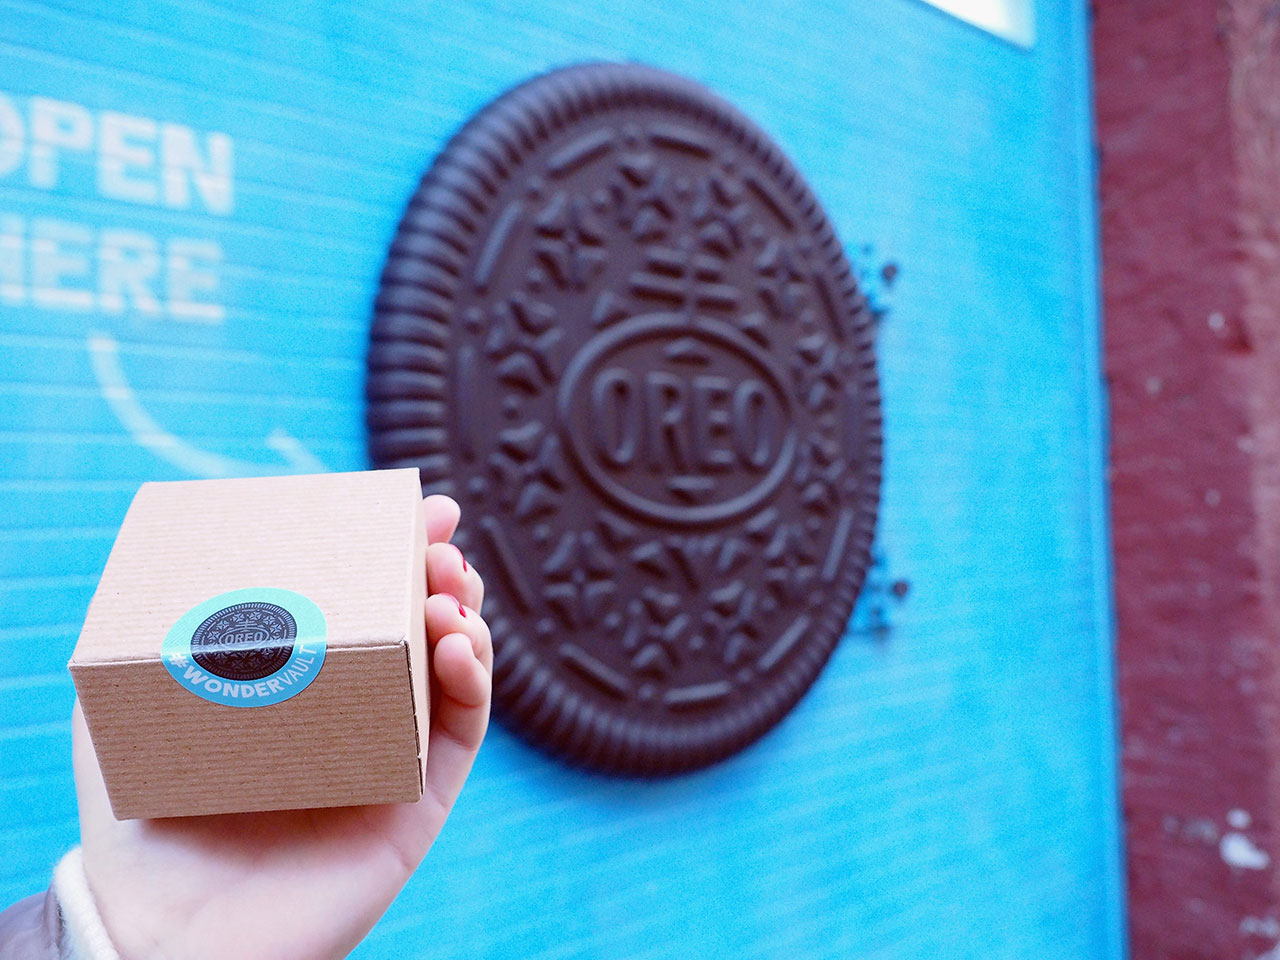 dans-ta-pub-affichage-new-york-wonderful-cookies-oreo-vault-4